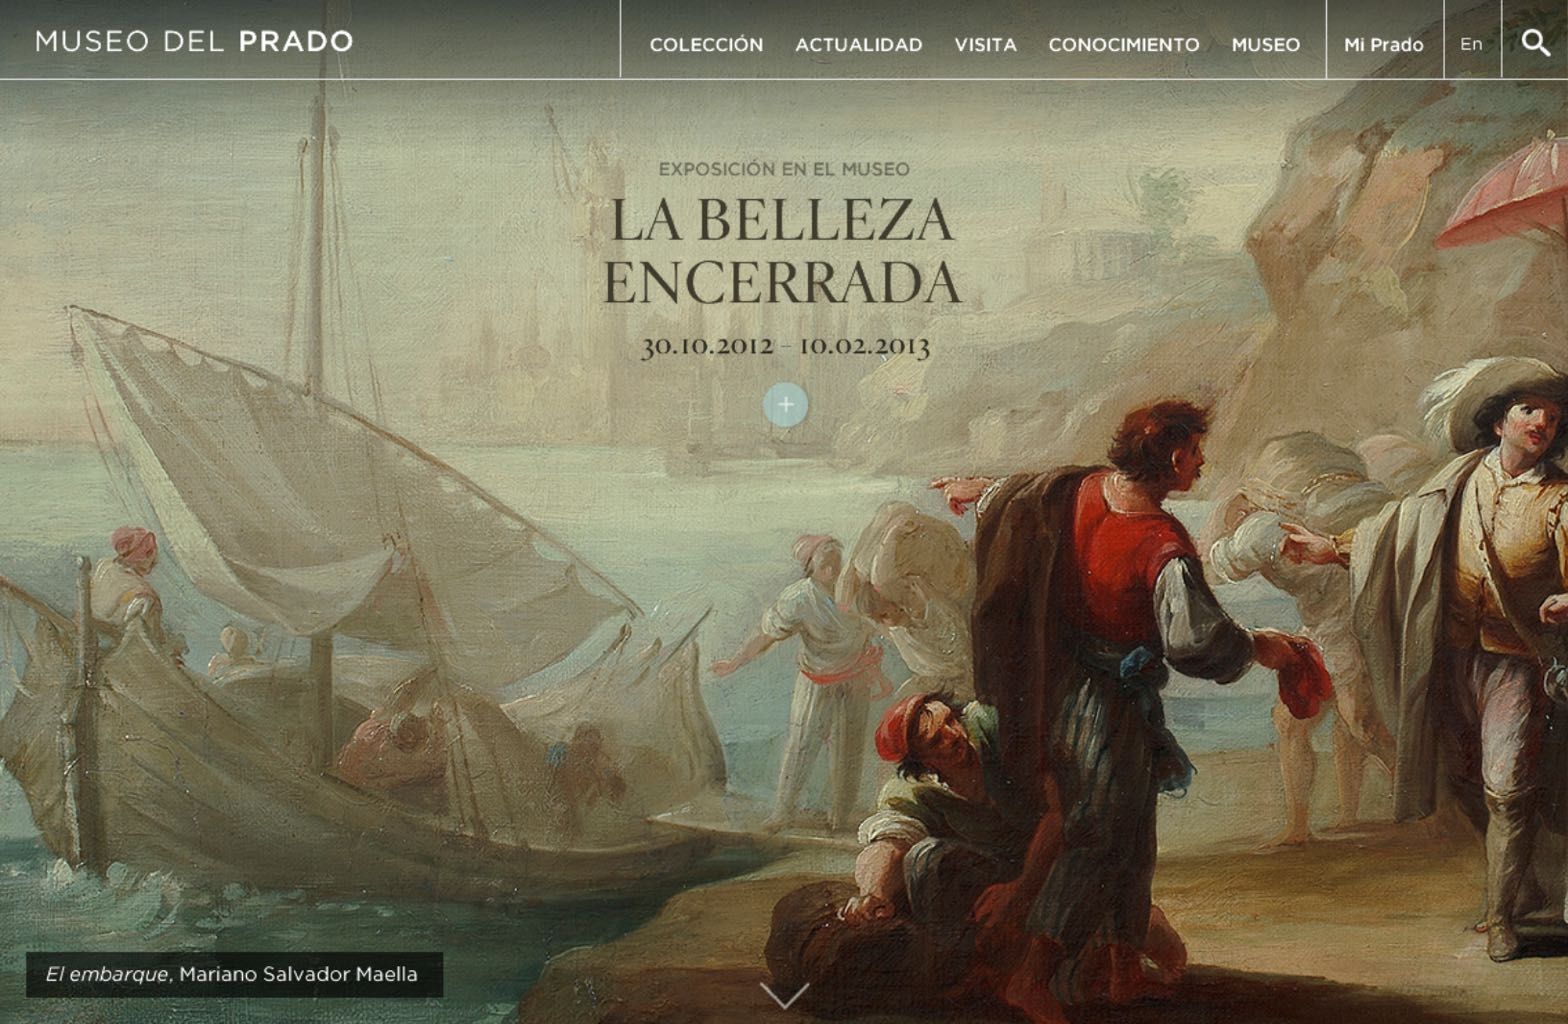 Prado Museum website screenshot